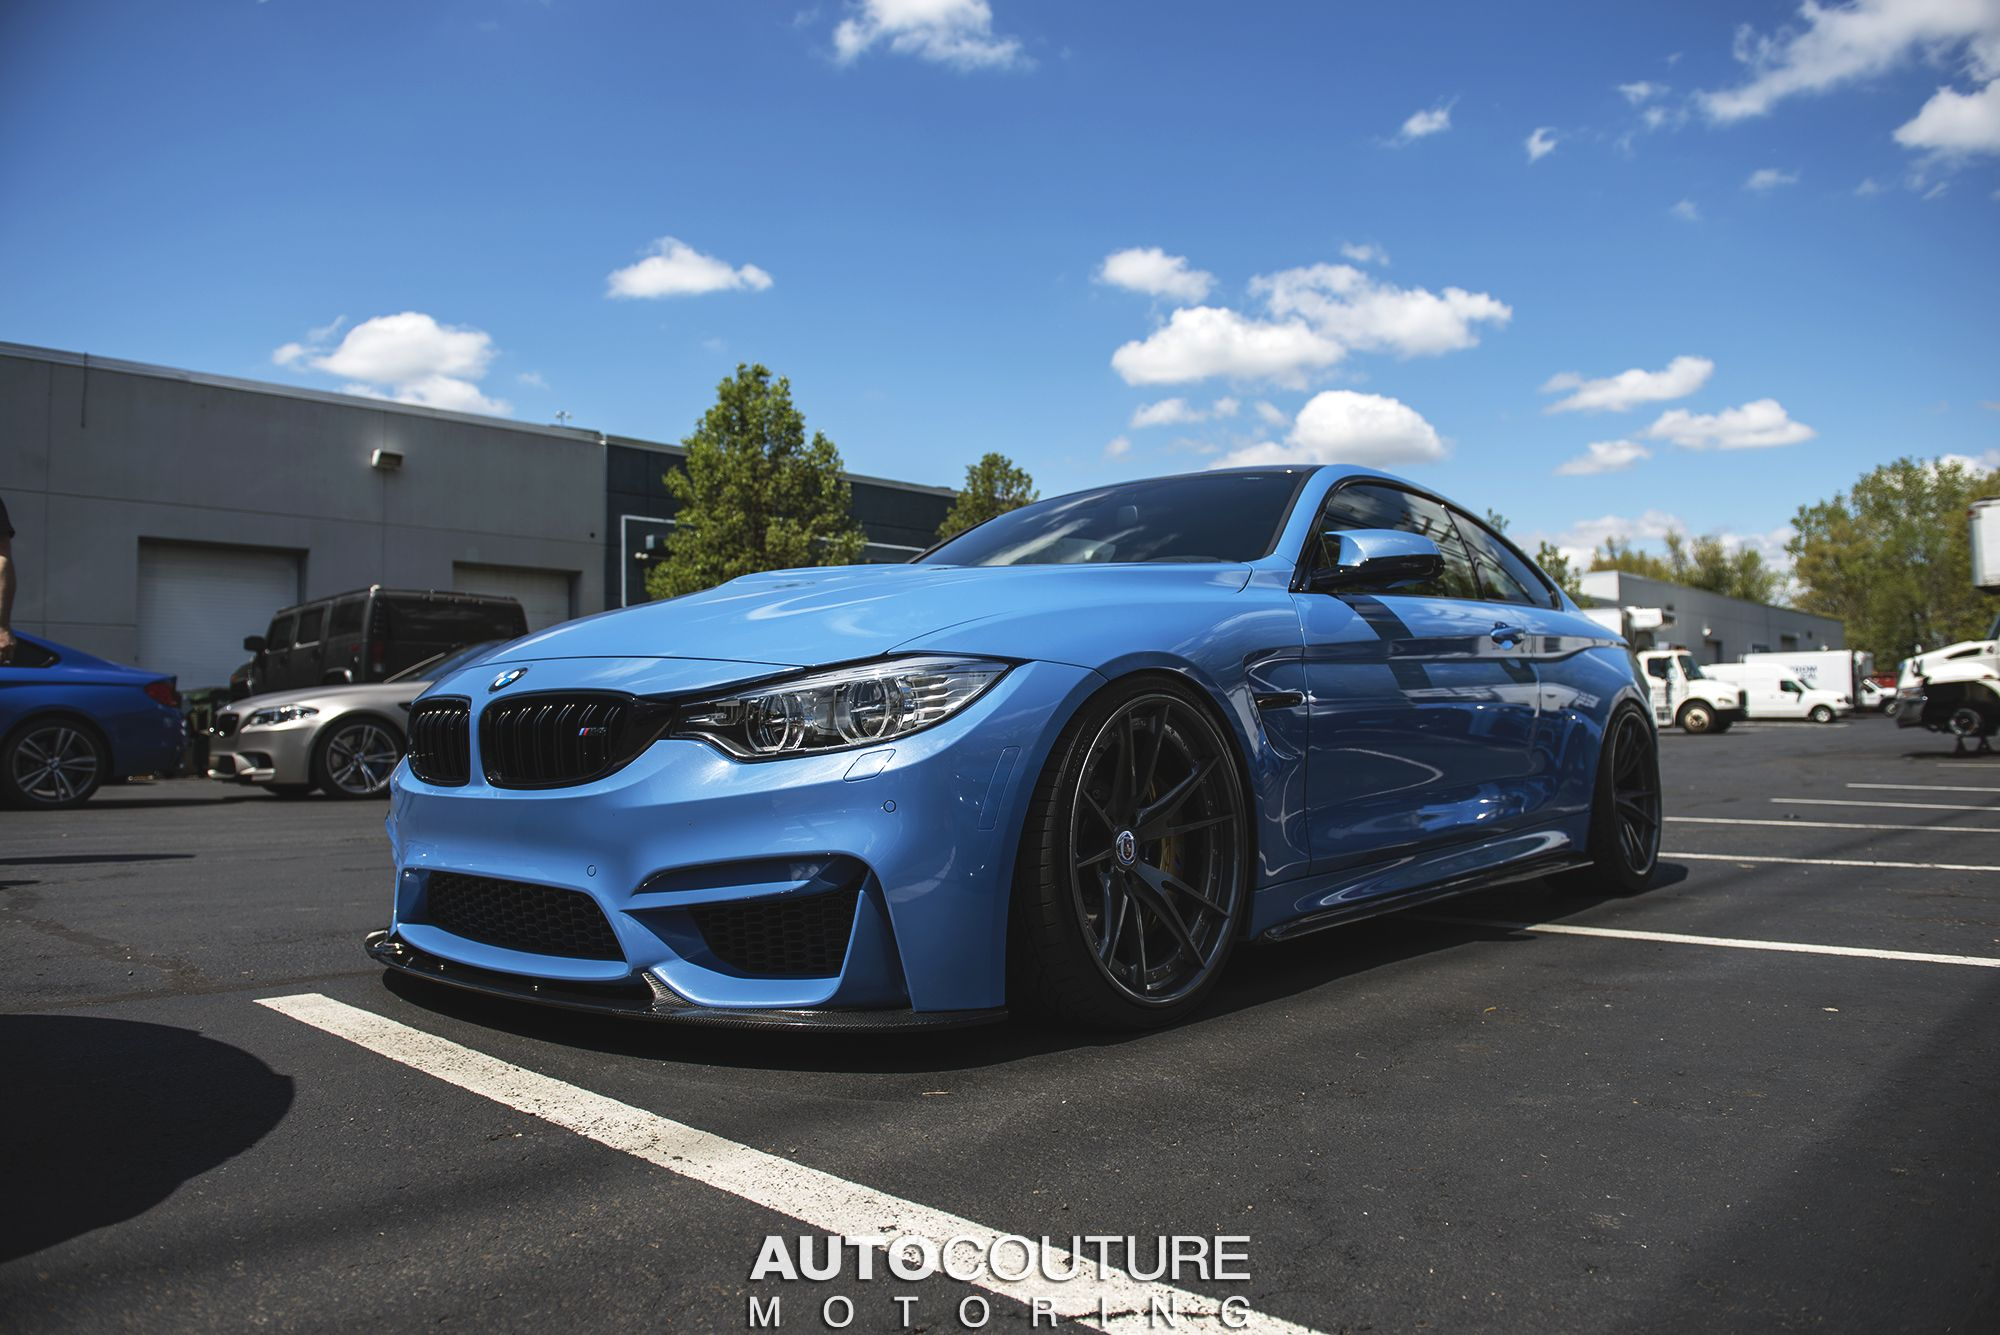 #BMW #F82 #M4 #Coupe #Yasmarine #Blue #Badass #Provocative #Sexy #Hot #Live #Life #Love #Follow #Your #heart #BMWLife